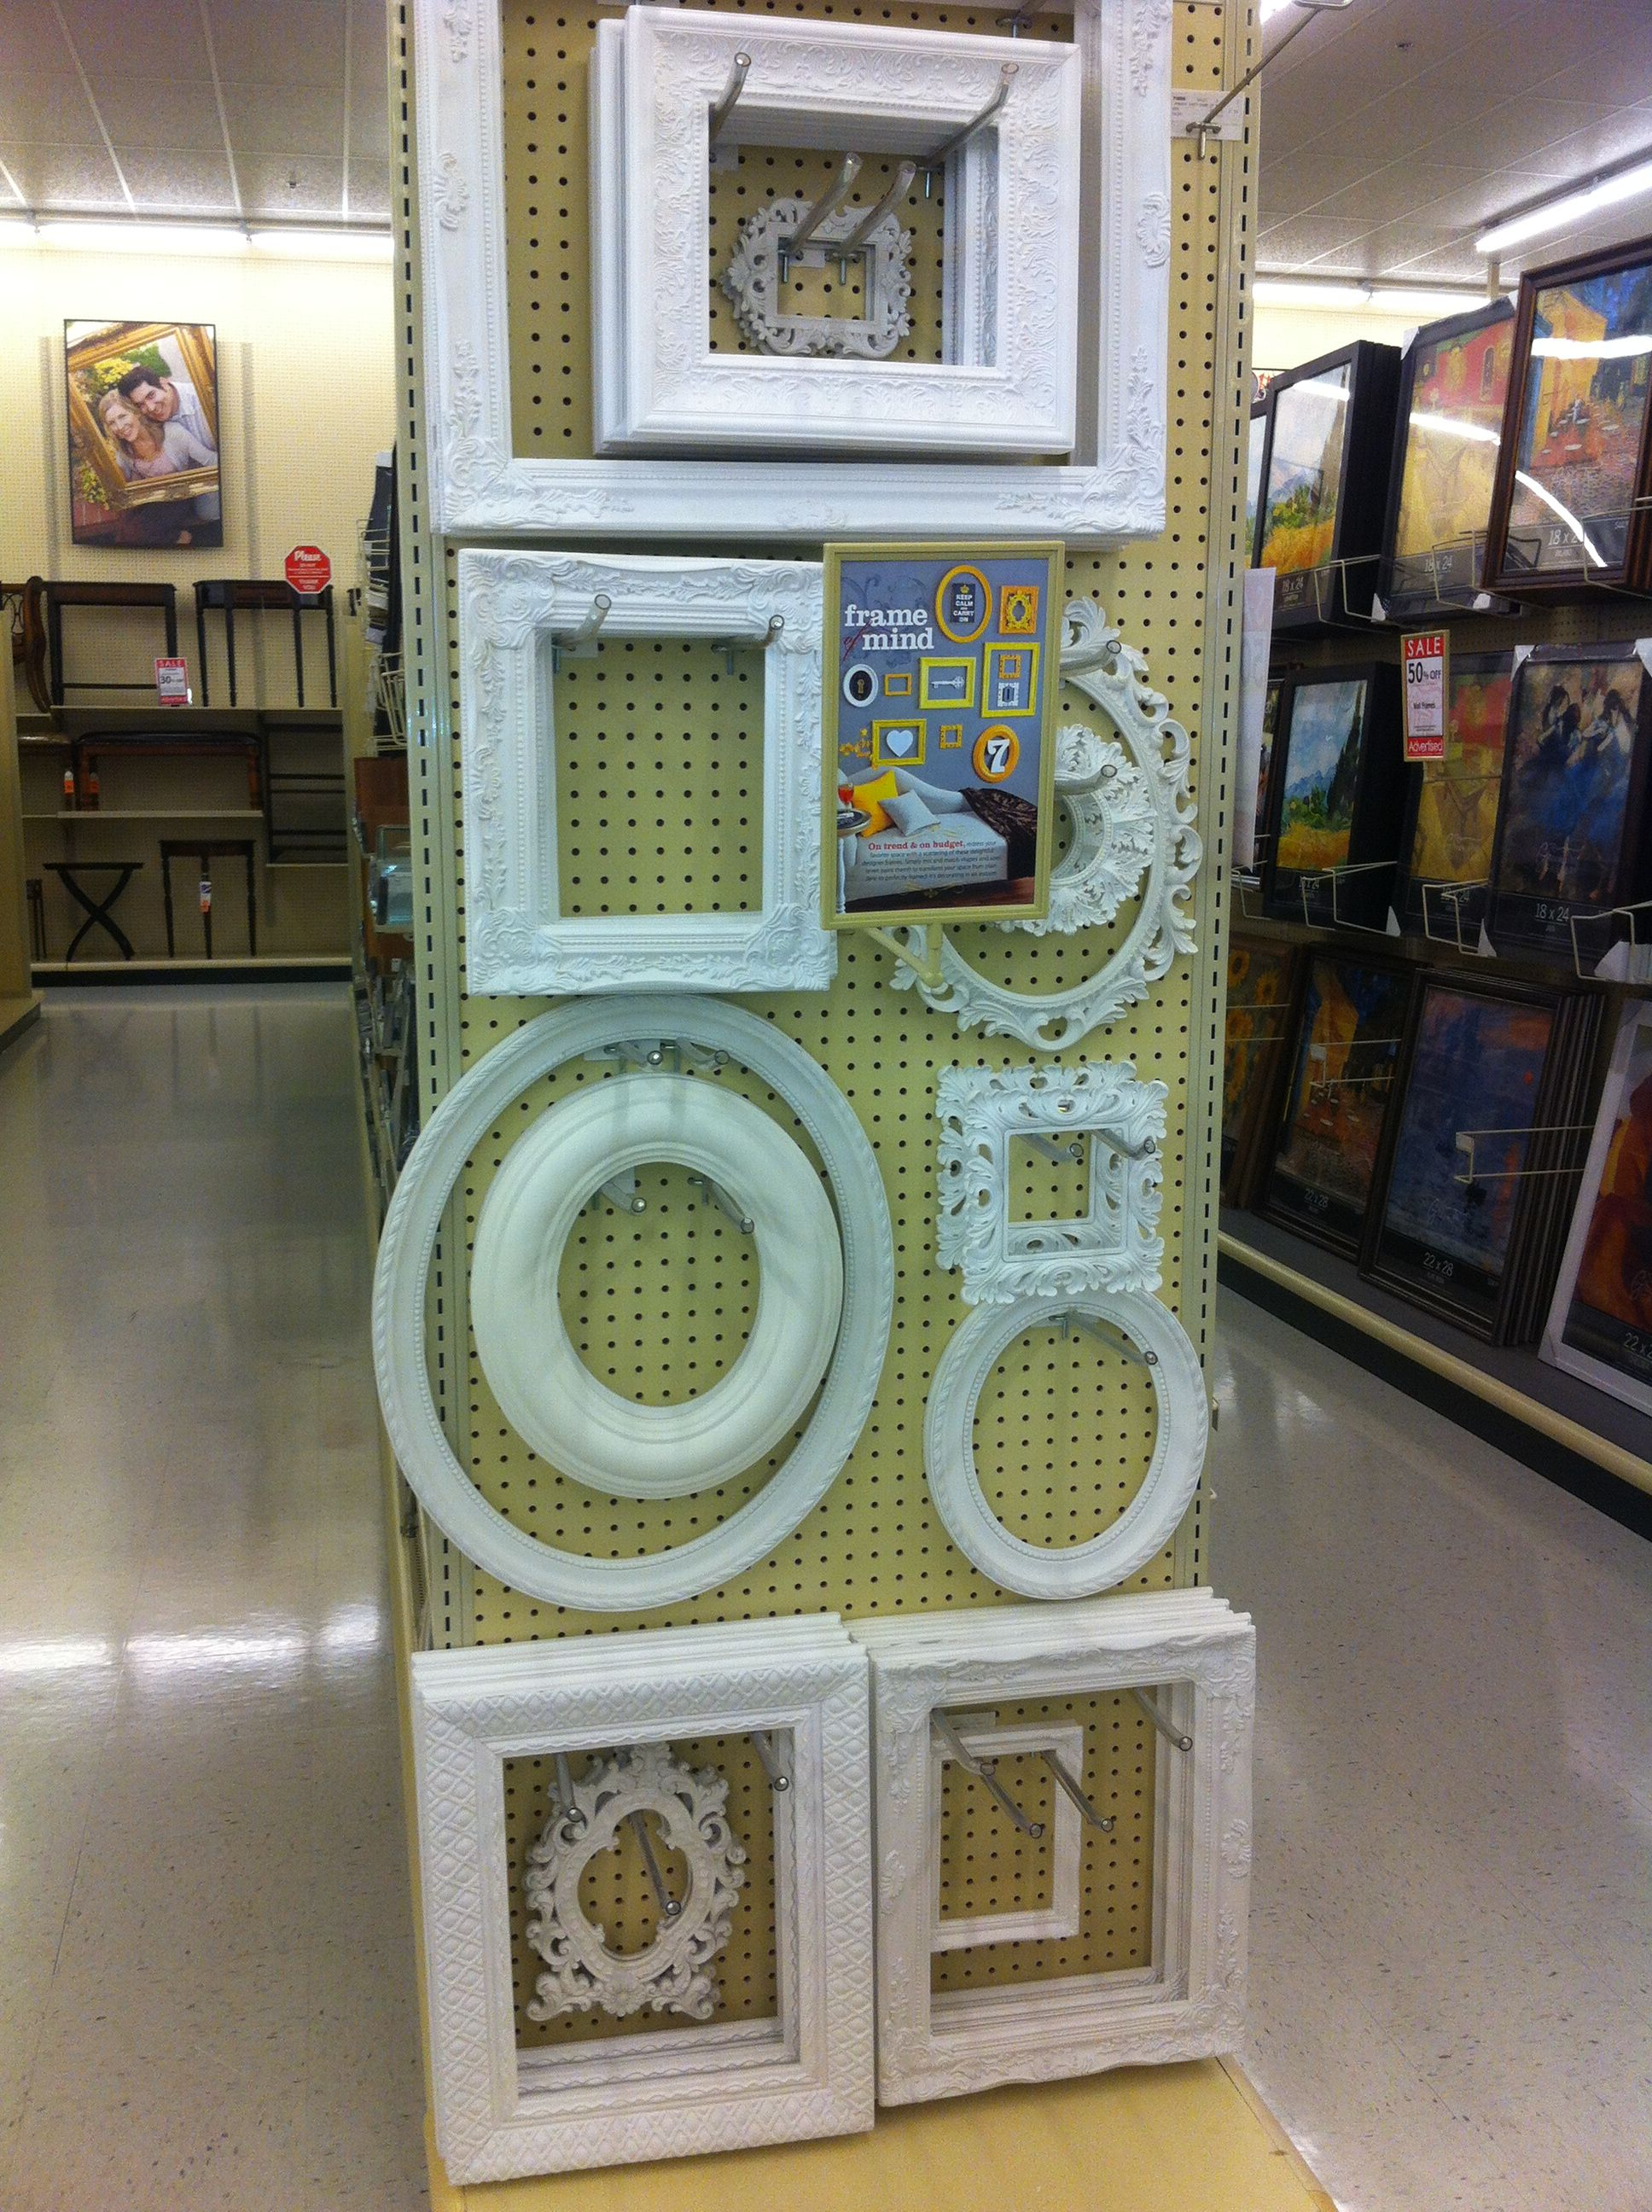 Hobby Lobby frames | For the Home | Pinterest | Hobby lobby frames ...